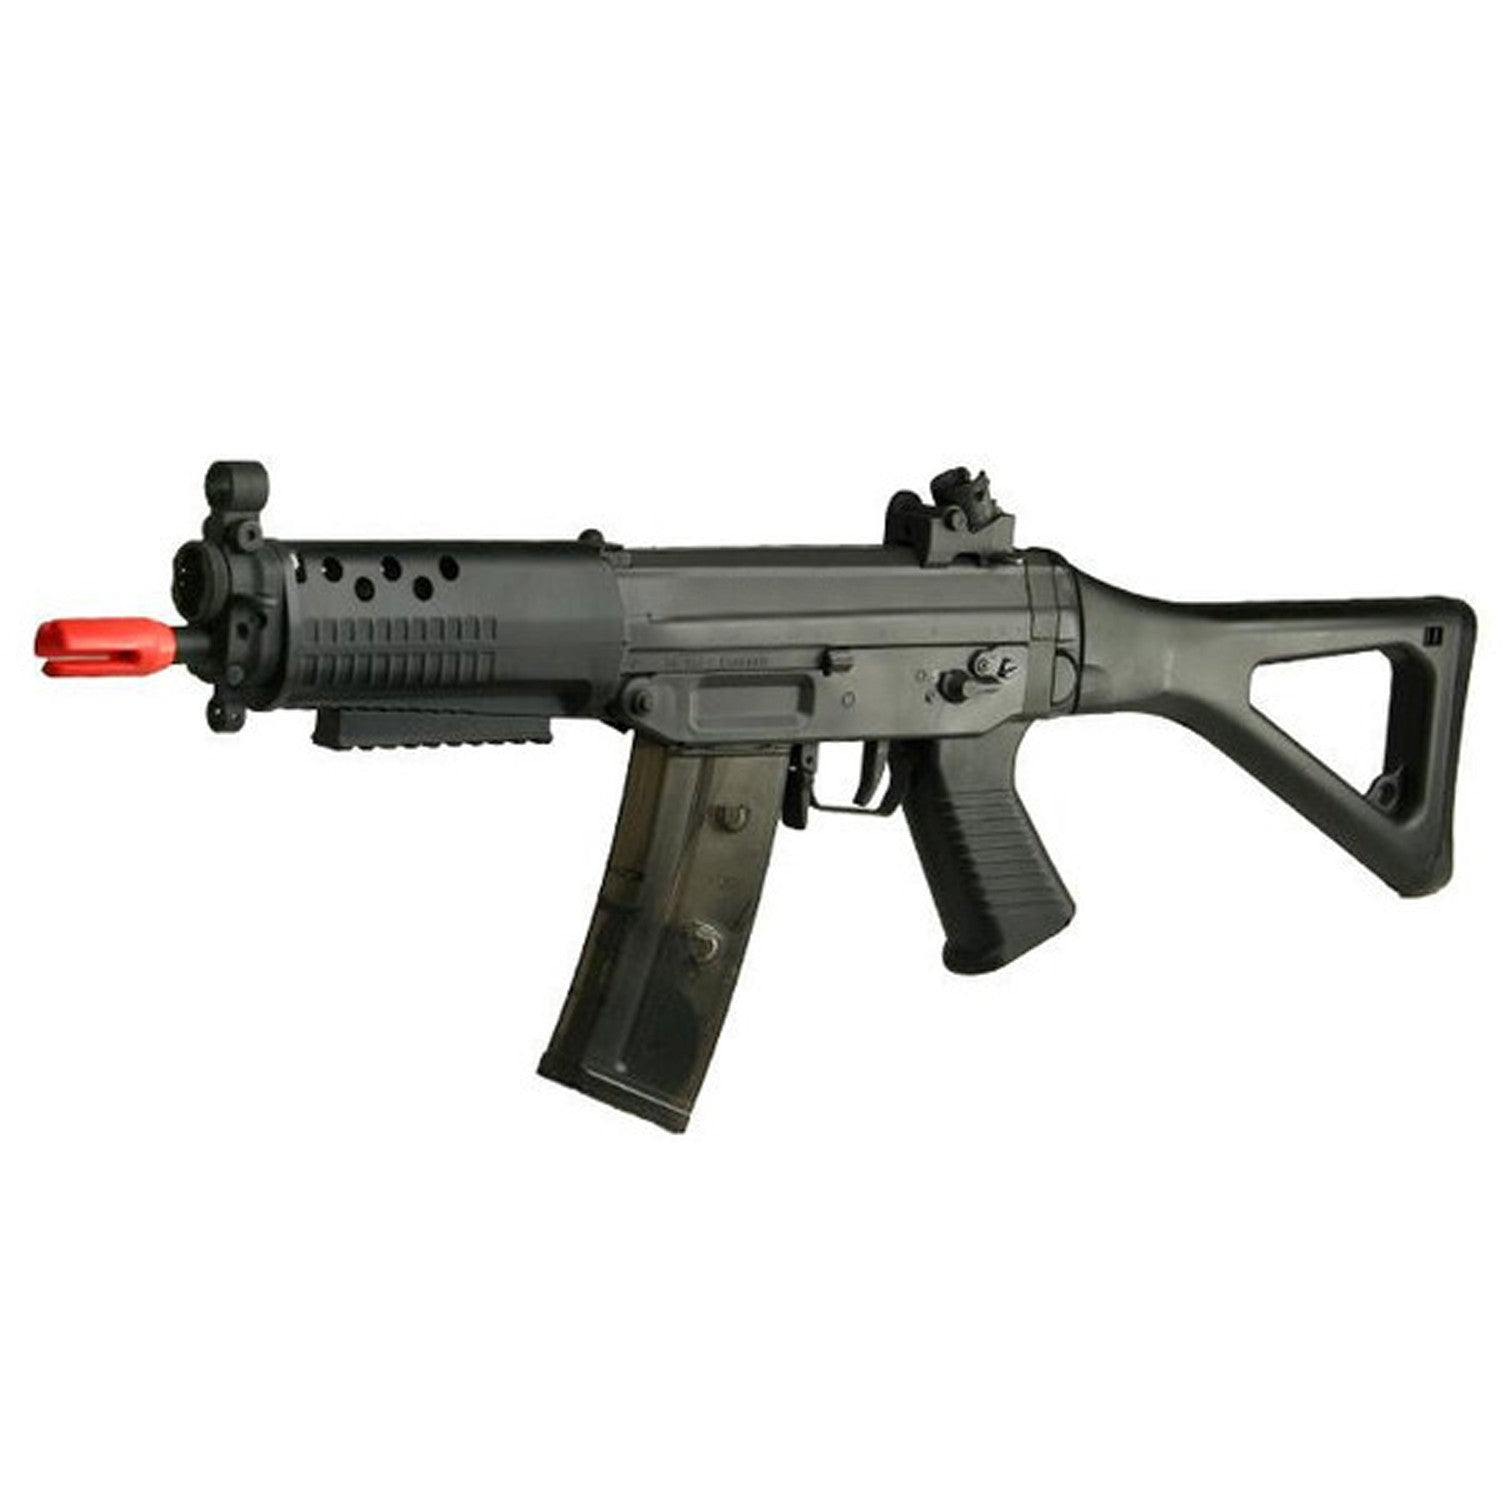 JG SIG 552 AEG Airsoft Gun       FPS 330-350     12-13 RPS     8.4 V. Rechargeable Battery & Wall Charger Included     300 Rd. High Cap. Magazine Included     Version III Gearbox     Ambidextrous Selector     Side Folding Stock     Wired to the Front     Manufacturer: Jing Gong